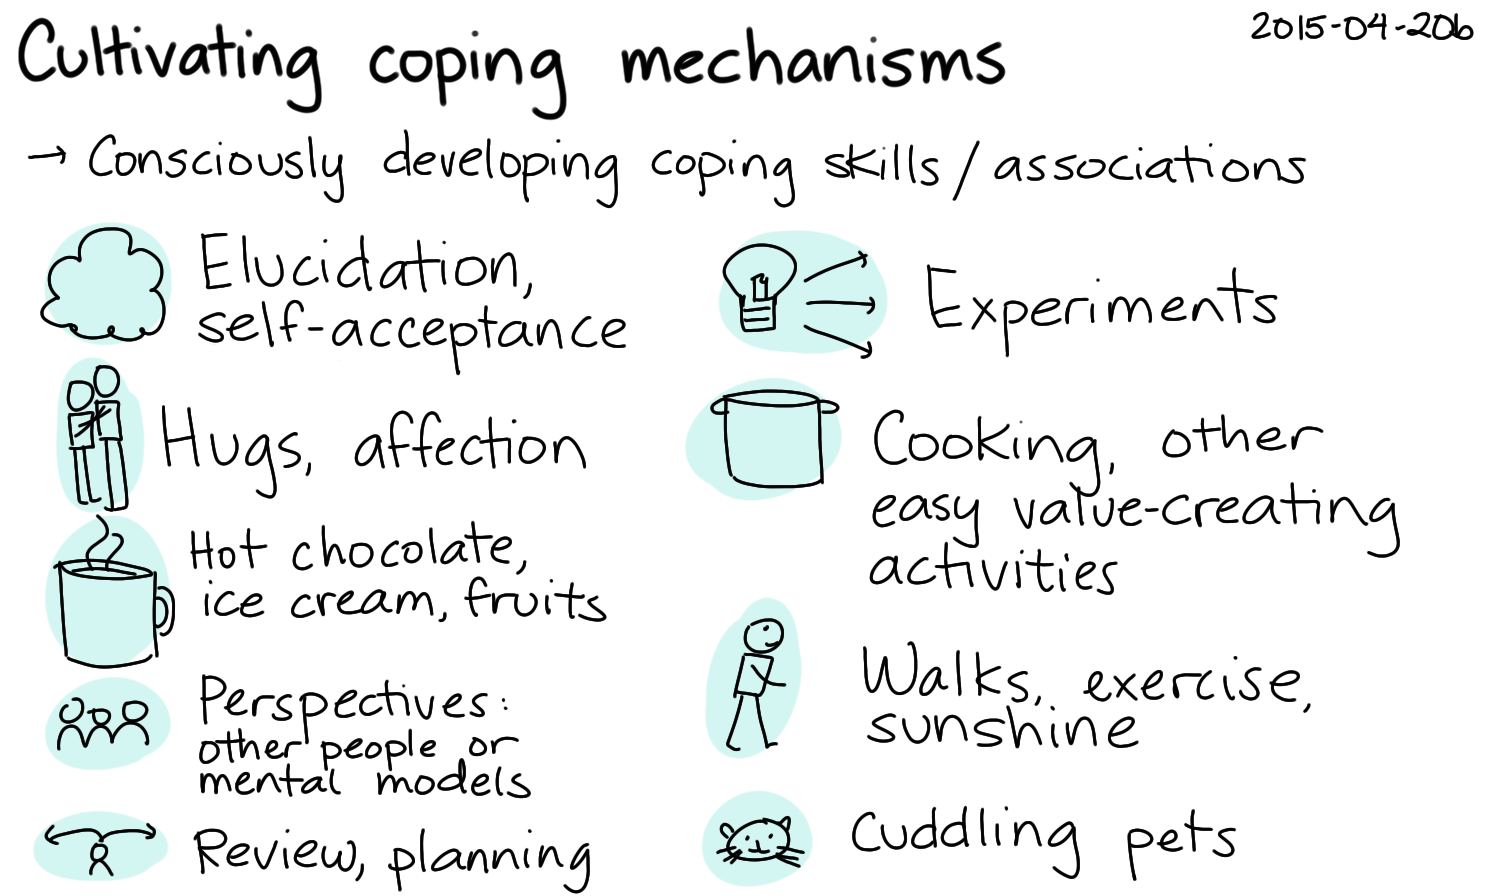 coping mechanism how do cares deal Learning coping mechanisms to deal with the sadness of losing a particular patient will help you to continue working and caring for those who rely on your expertise and compassion 1 recognize that death could be a possible outcome, especially among trauma patients, the chronically ill, the elderly, and those with do not resuscitate (dnr) orders.